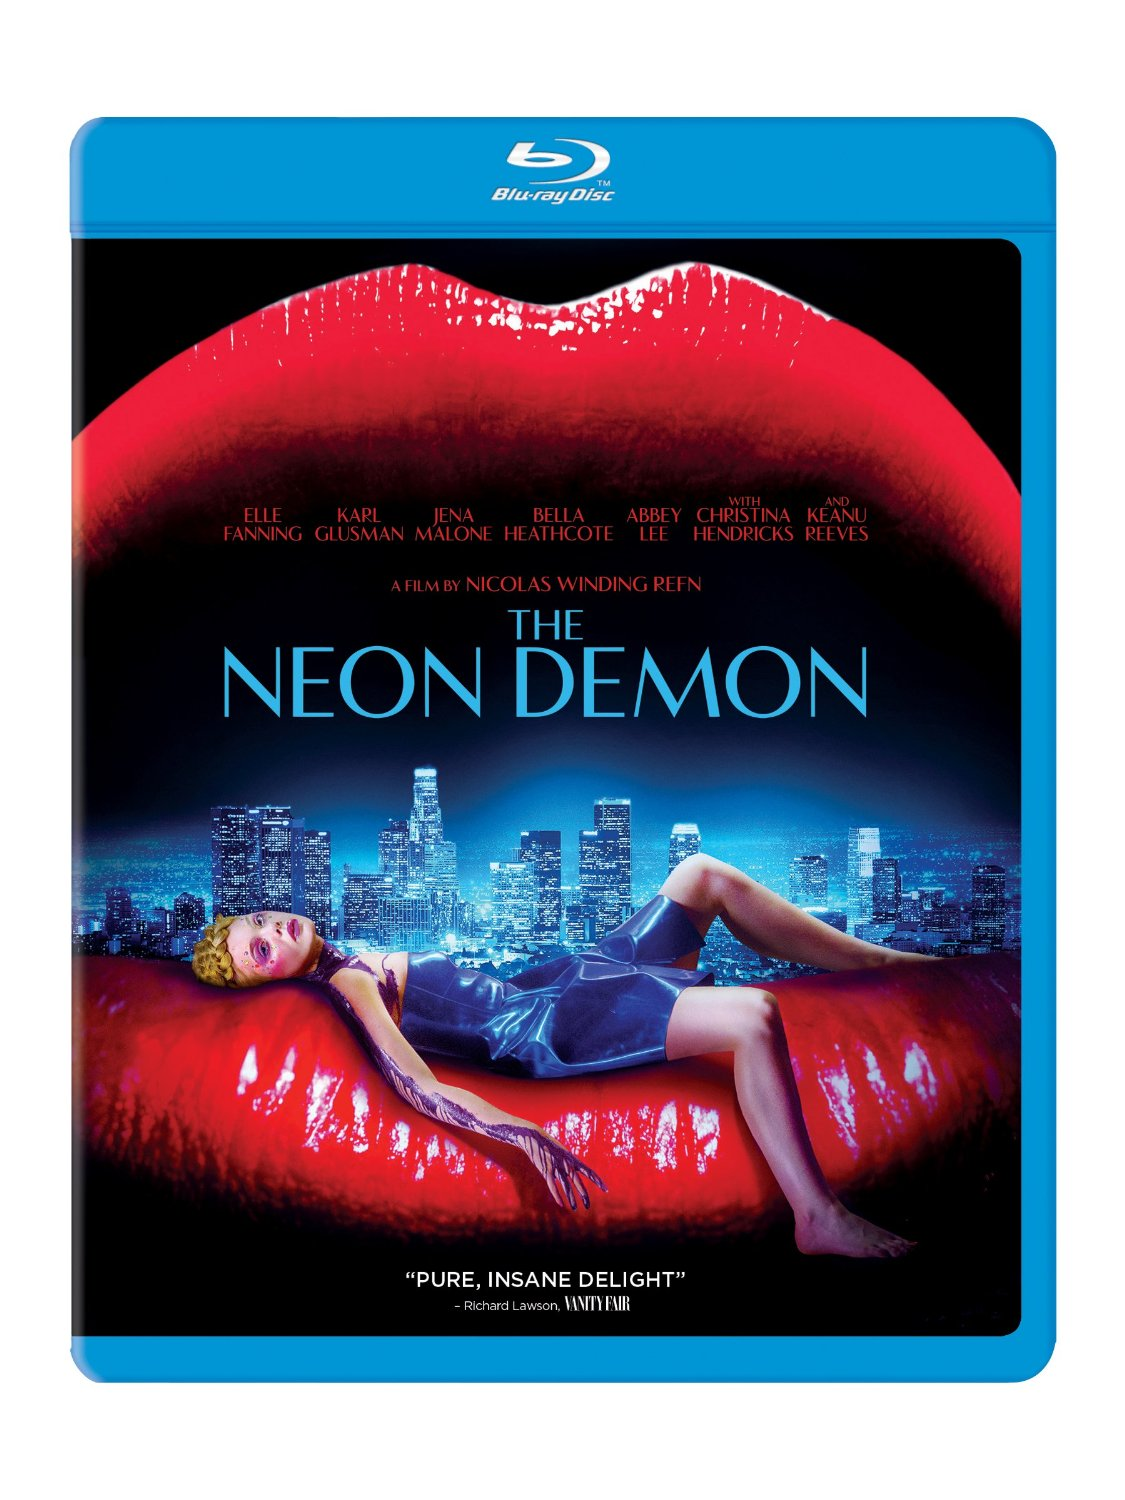 """I didn't think visionary Nicolas Winding Refn could make a worse movie until I saw THE NEON DEMON. This is a film I can't go back and give it another try to see if my feelings change. I do this with ONLY GOD FORGIVES once a year and the results are the same: I hate you. I know Refn was under a lot of pressure after the massive success of DRIVE, and he didn't want people to think he was making DRIVE 2, but casting Gosling as the silent anti-hero again kind of chopped and screwed everything. ONLY GOD FORGIVES has one of the best titles in cinema, and a few cool scenes (The quick """"Wanna fight?"""" moment is amazing), the movie forgot to have a plot and is just scenes cut together.  In NEON DEMON, Jesse (Elle Fanning), young and naive, runs away to LA to become a model. She's got natural beauty and seems to be on the right track. Then she starts to hang with a group of vicious models Ruby (Jena Malone), Gigi (Bella Heathcote), and Sarah (Abbey Lee), who understand how cutthroat the modeling business is.  Keanu Reeves makes an appearance as a pedophile apartment complex owner and his role is criminally underused. I want to see more of this vile Reeves, but we get just a glimpse.  The PR company in control of handling NEON DEMON sent press eyeballs, and you will learn why at some point in the movie. Great marketing.  NEON DEMON was co-written by two women, so I'm curious if the modeling world is really this ugly. (I sure hope not.)  If you are a Refn fan and/or model, I would say give this a rent."""